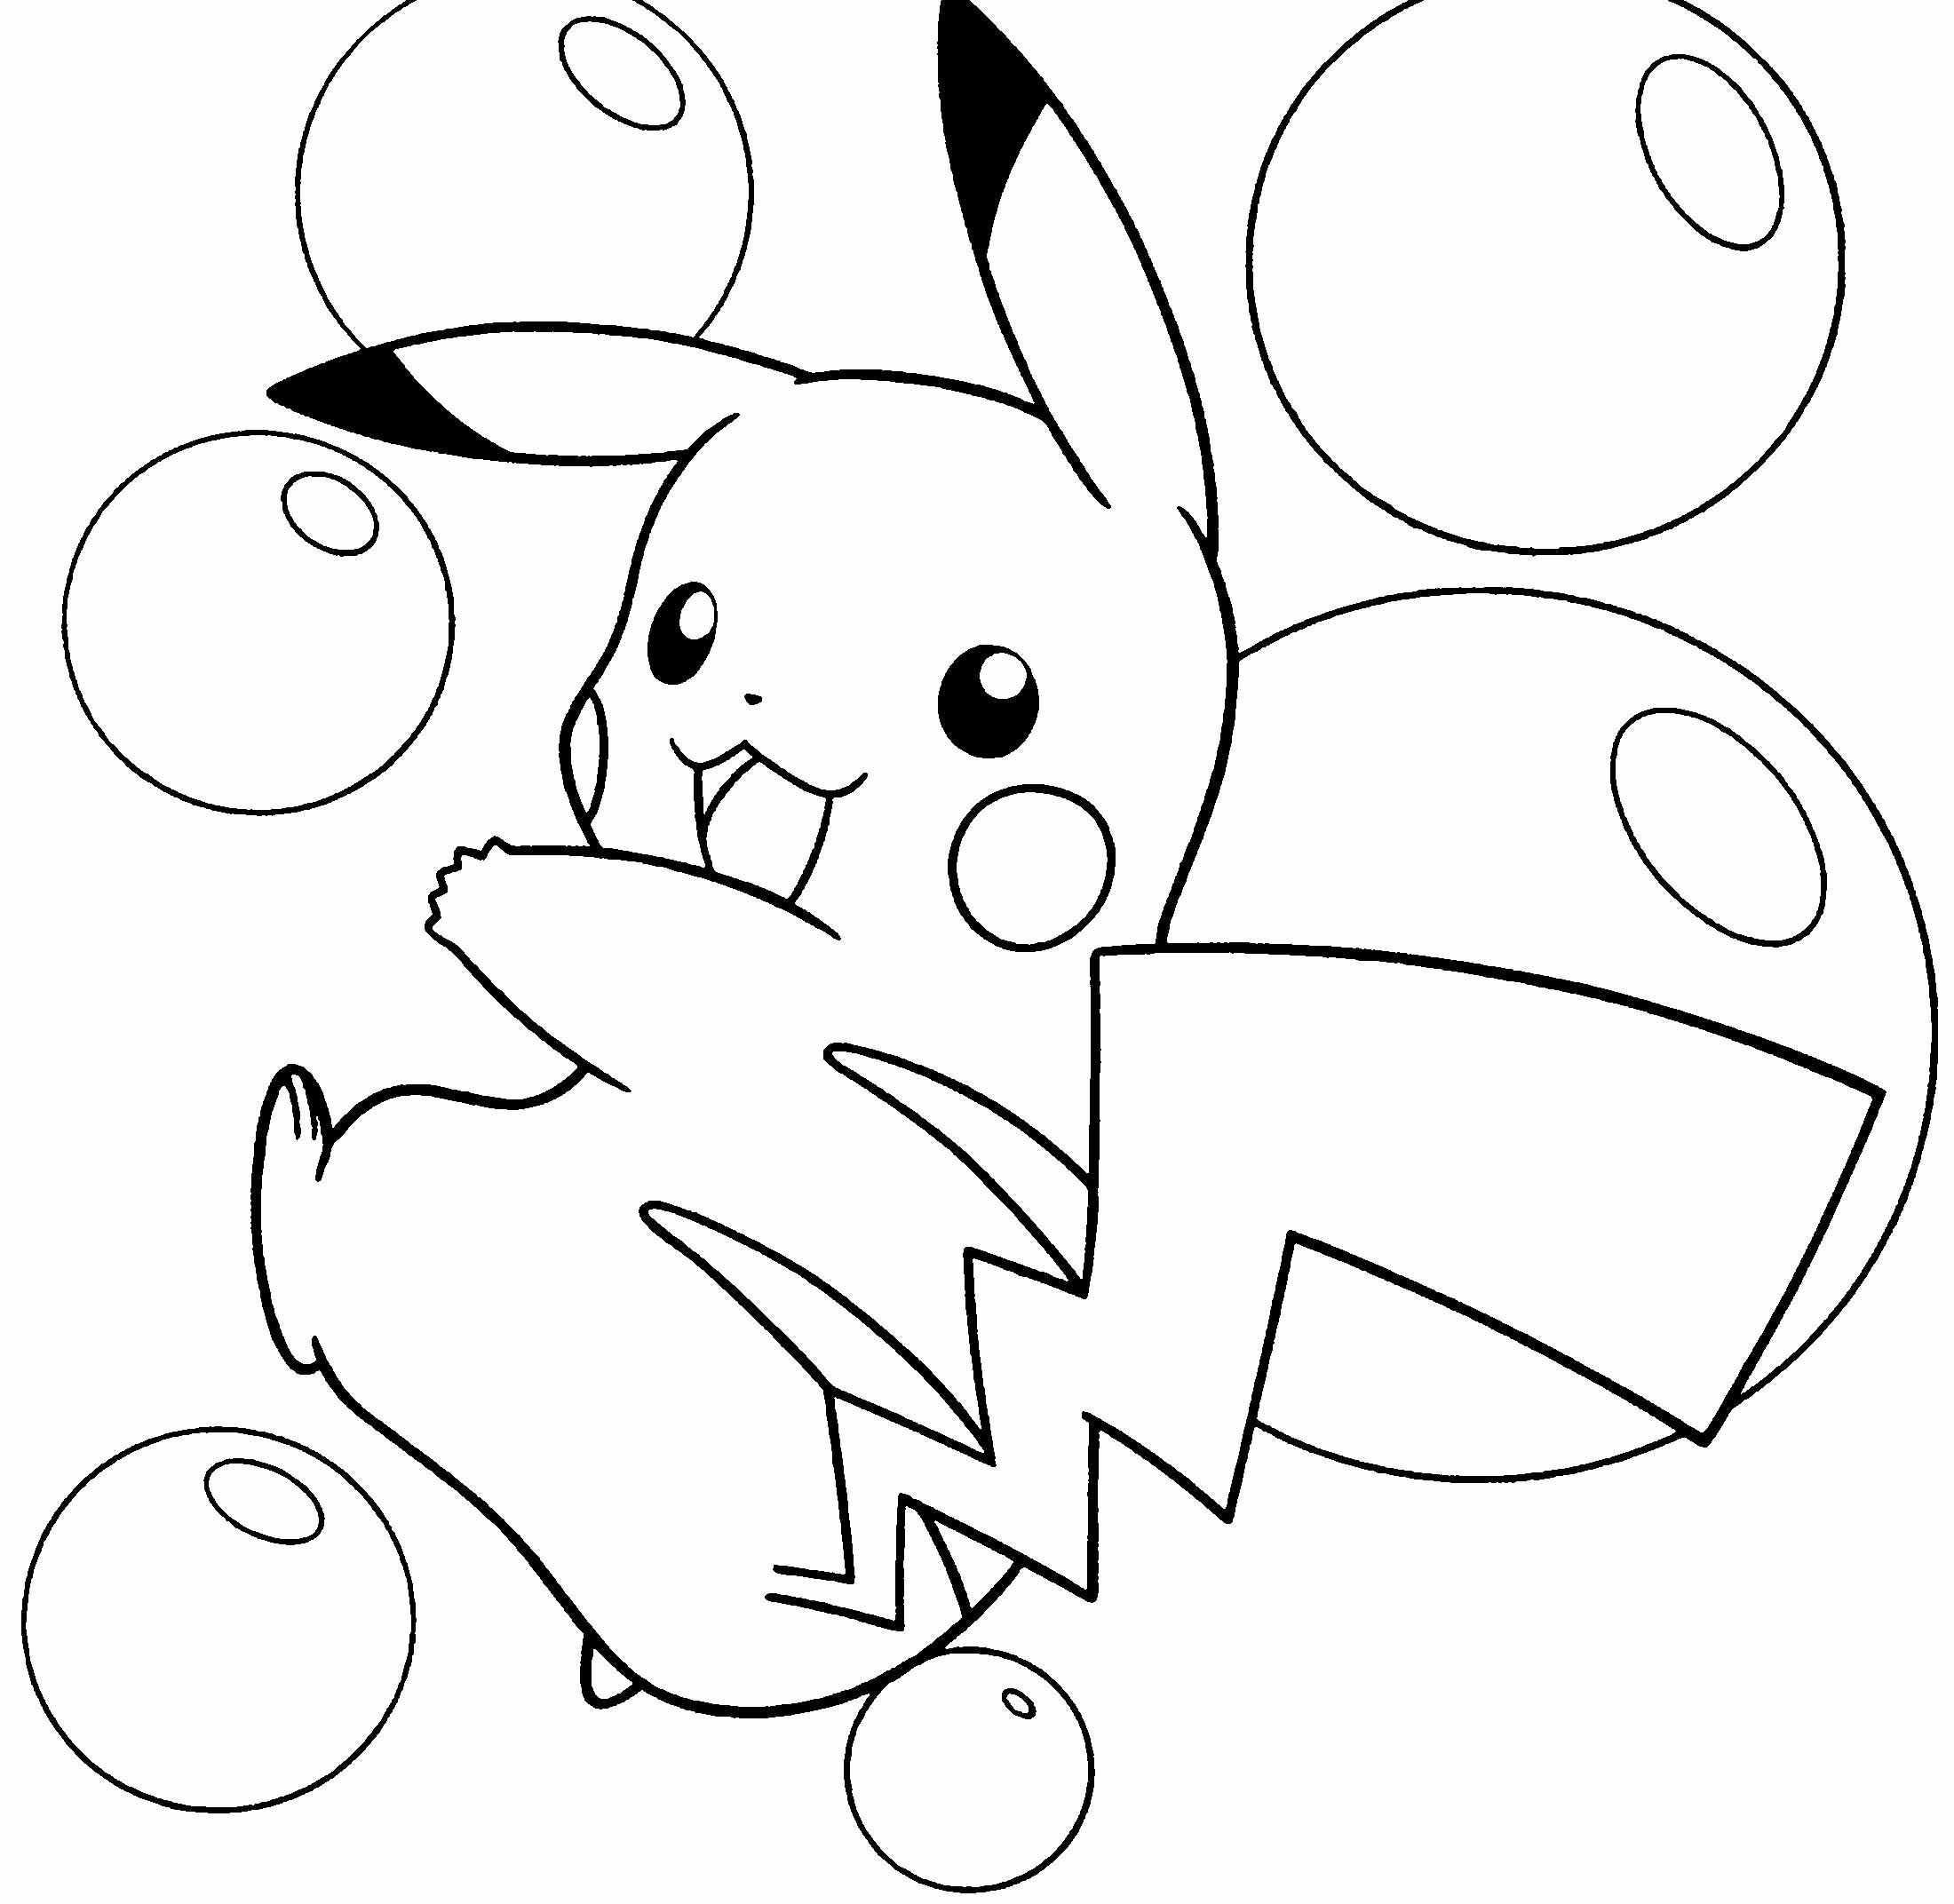 Pickachu Coloring Pages Coloring Home